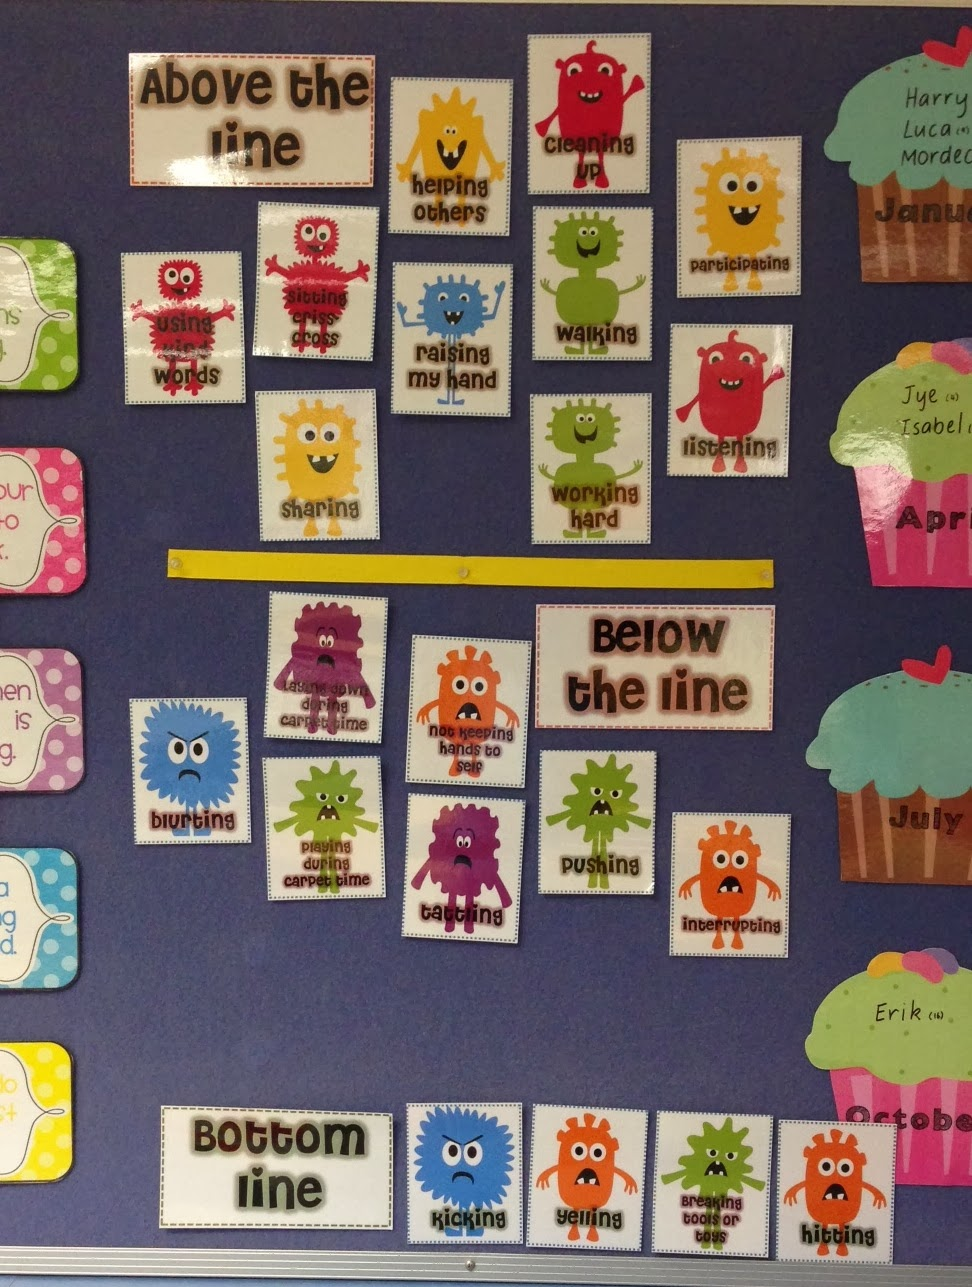 Classroom Management Ideas Year 1 ~ Love laughter and learning in prep two magic ideas